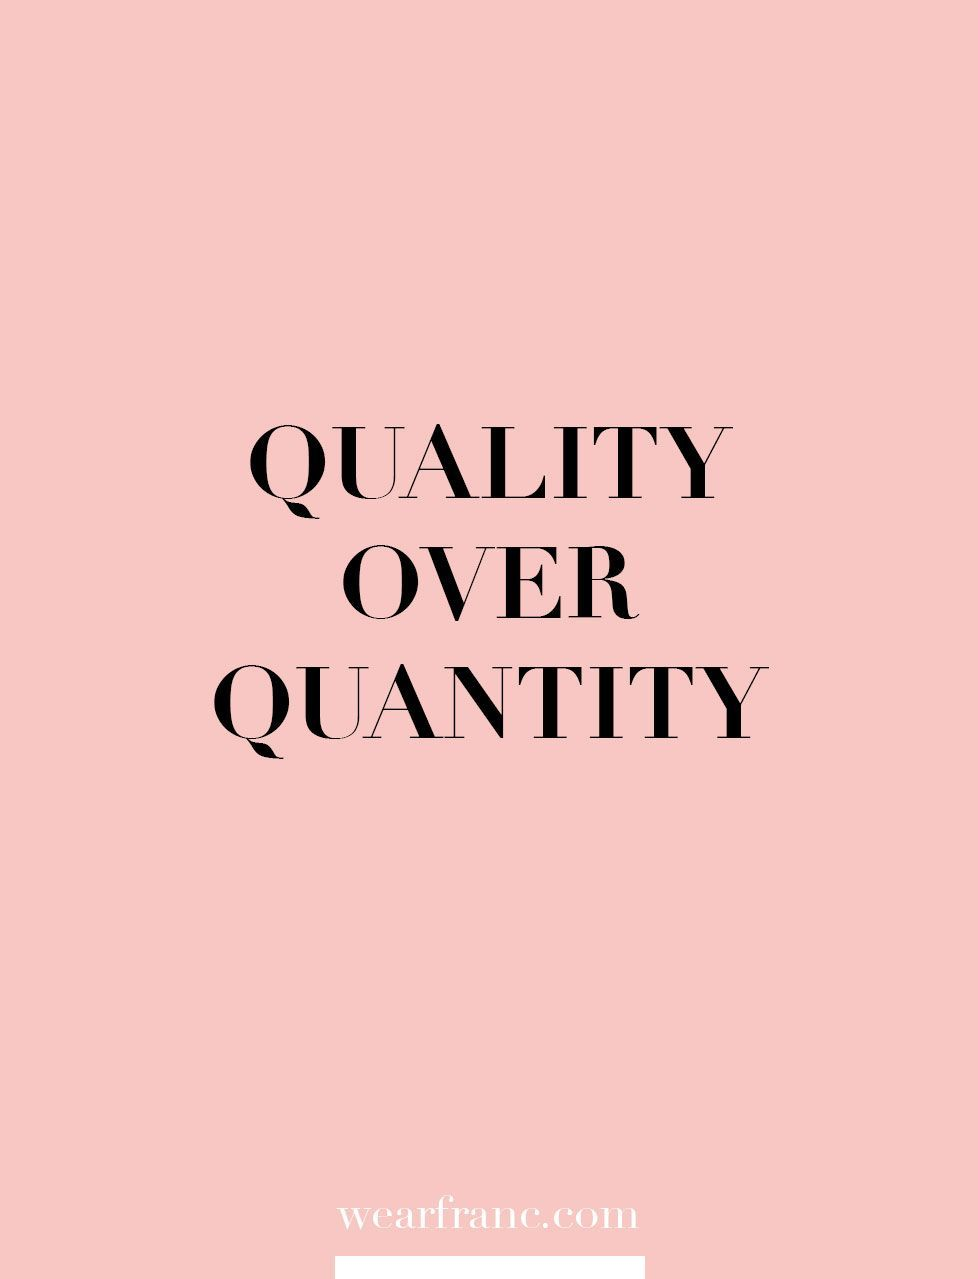 Quality Over Quantity Best Basics Weatfranc Com Homedecor2o18 Sustainable Fashion Quotes Fashion Quotes Quality Quotes